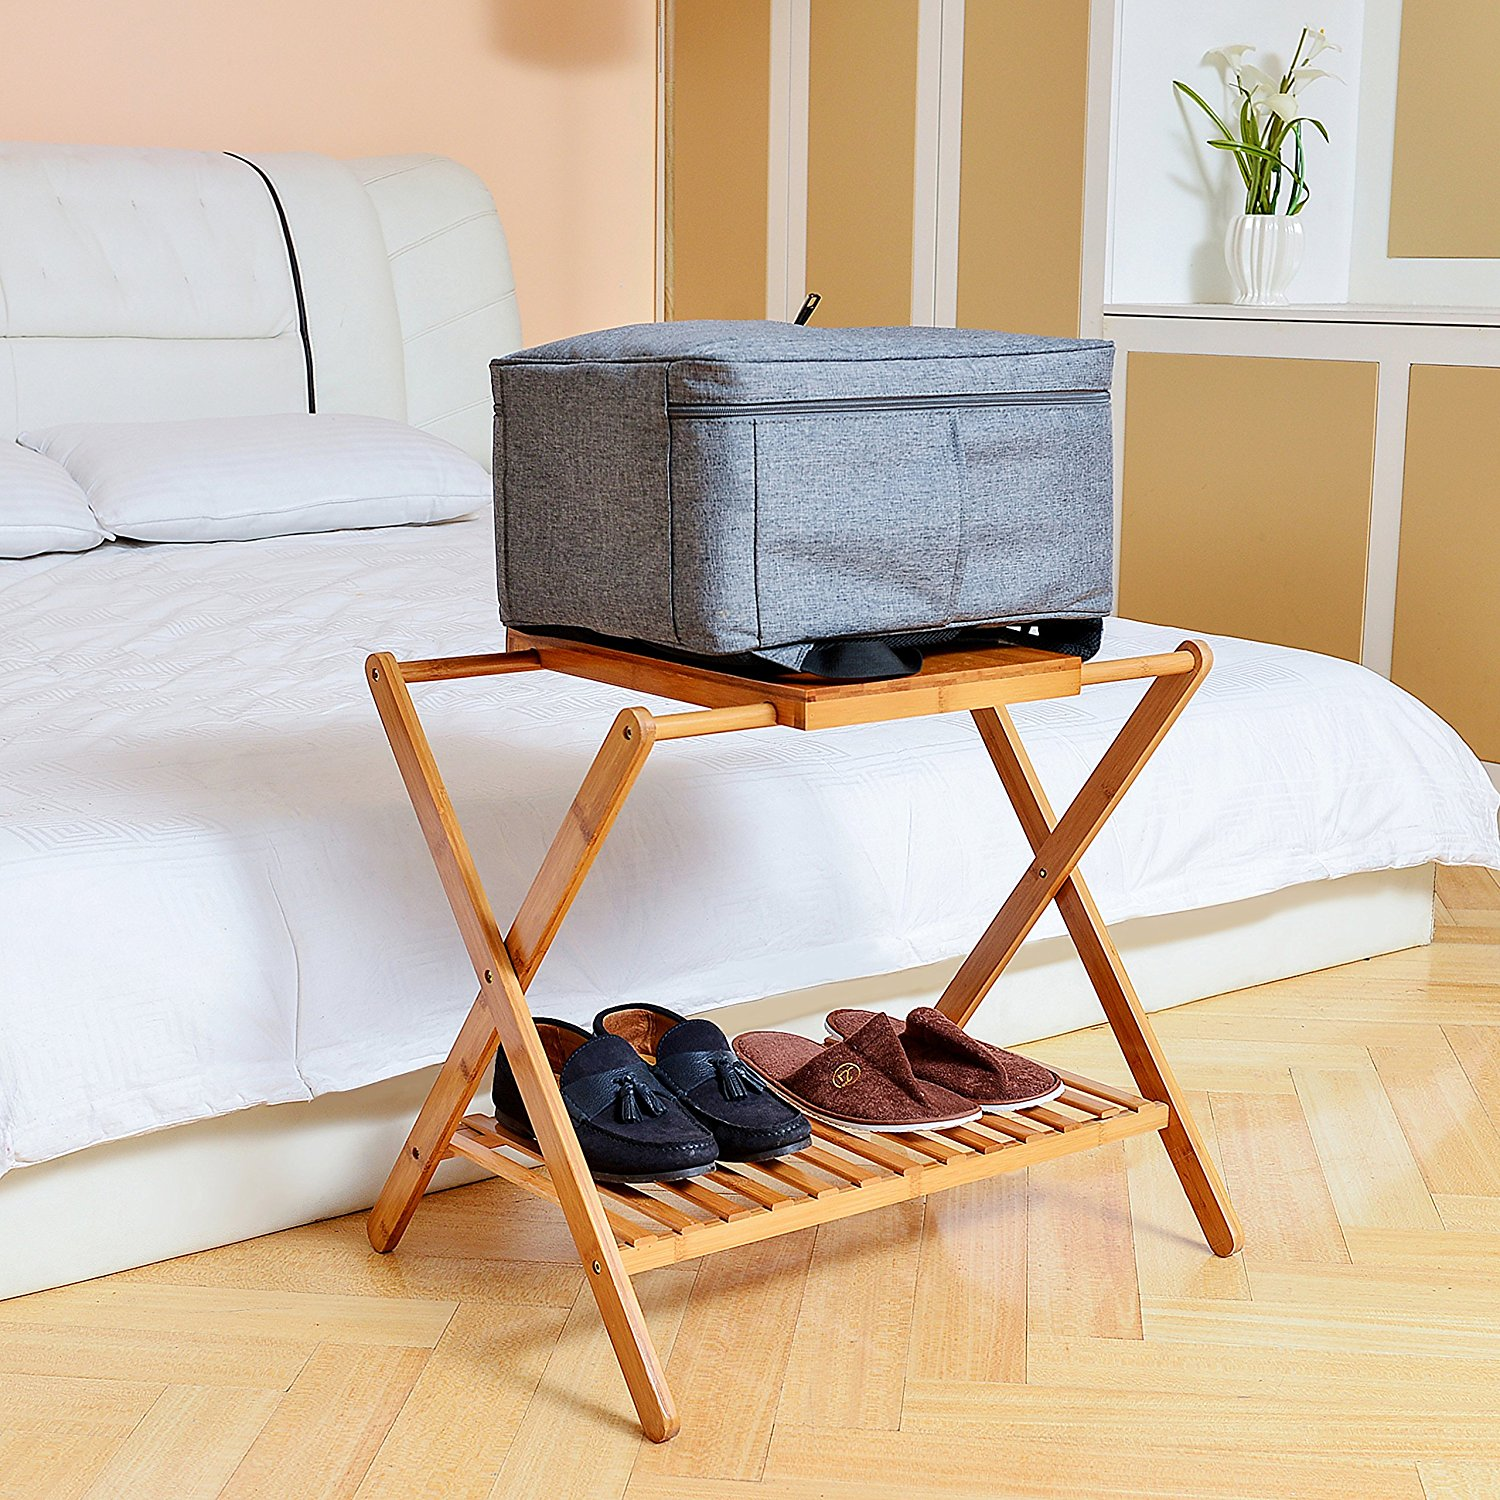 Make each guest feel at home with our favorite luggage rack